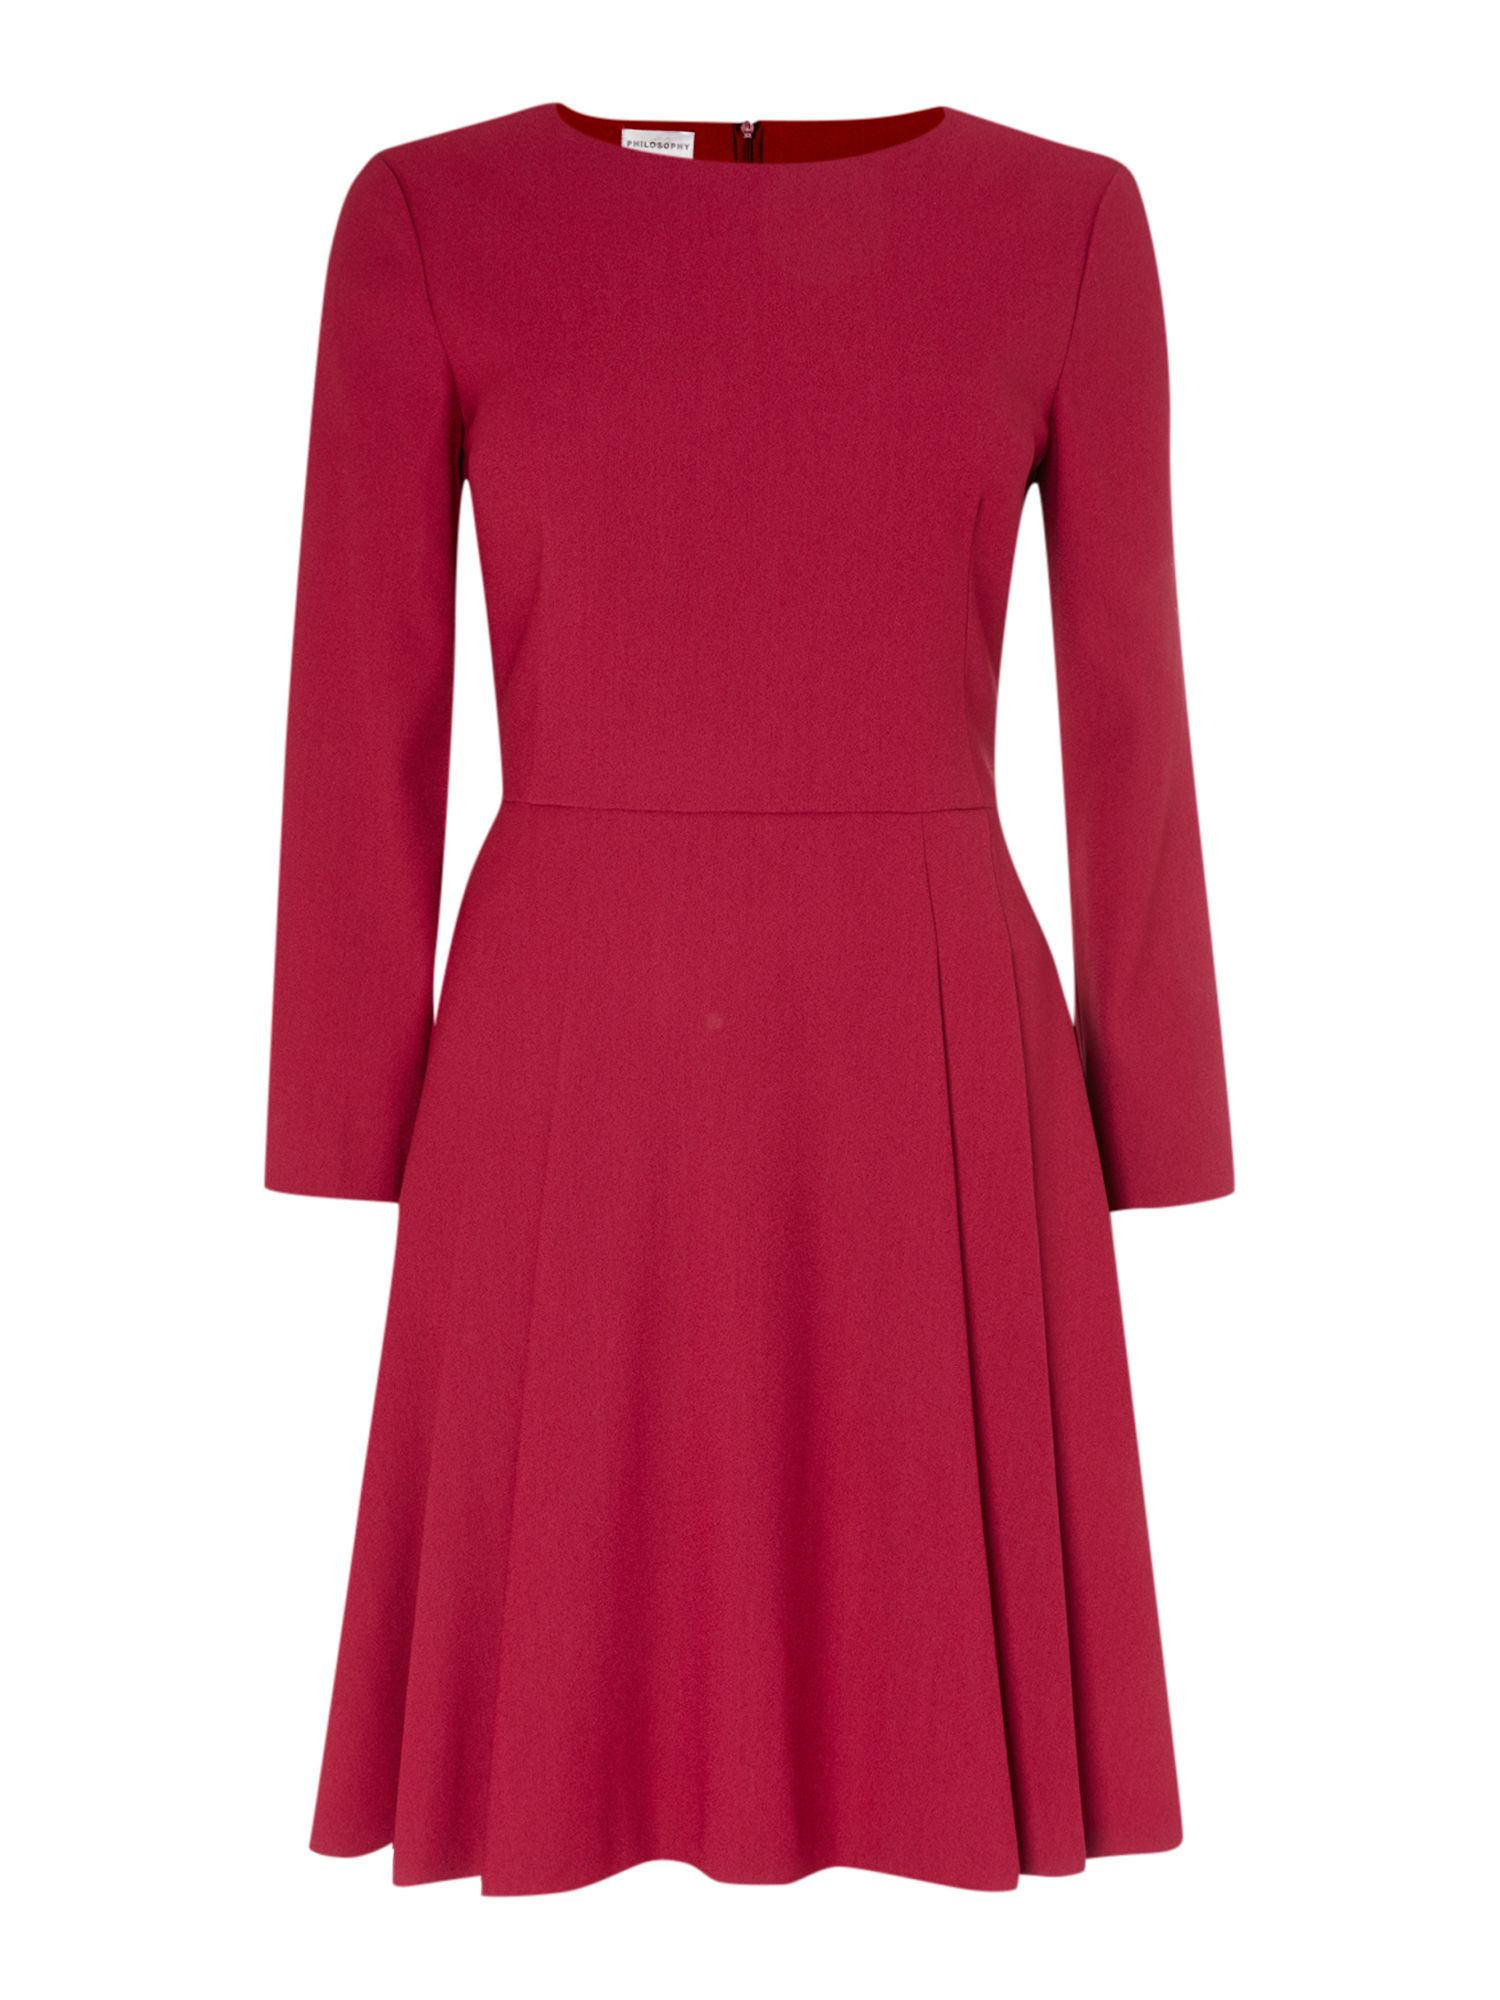 Long sleeved skater dress